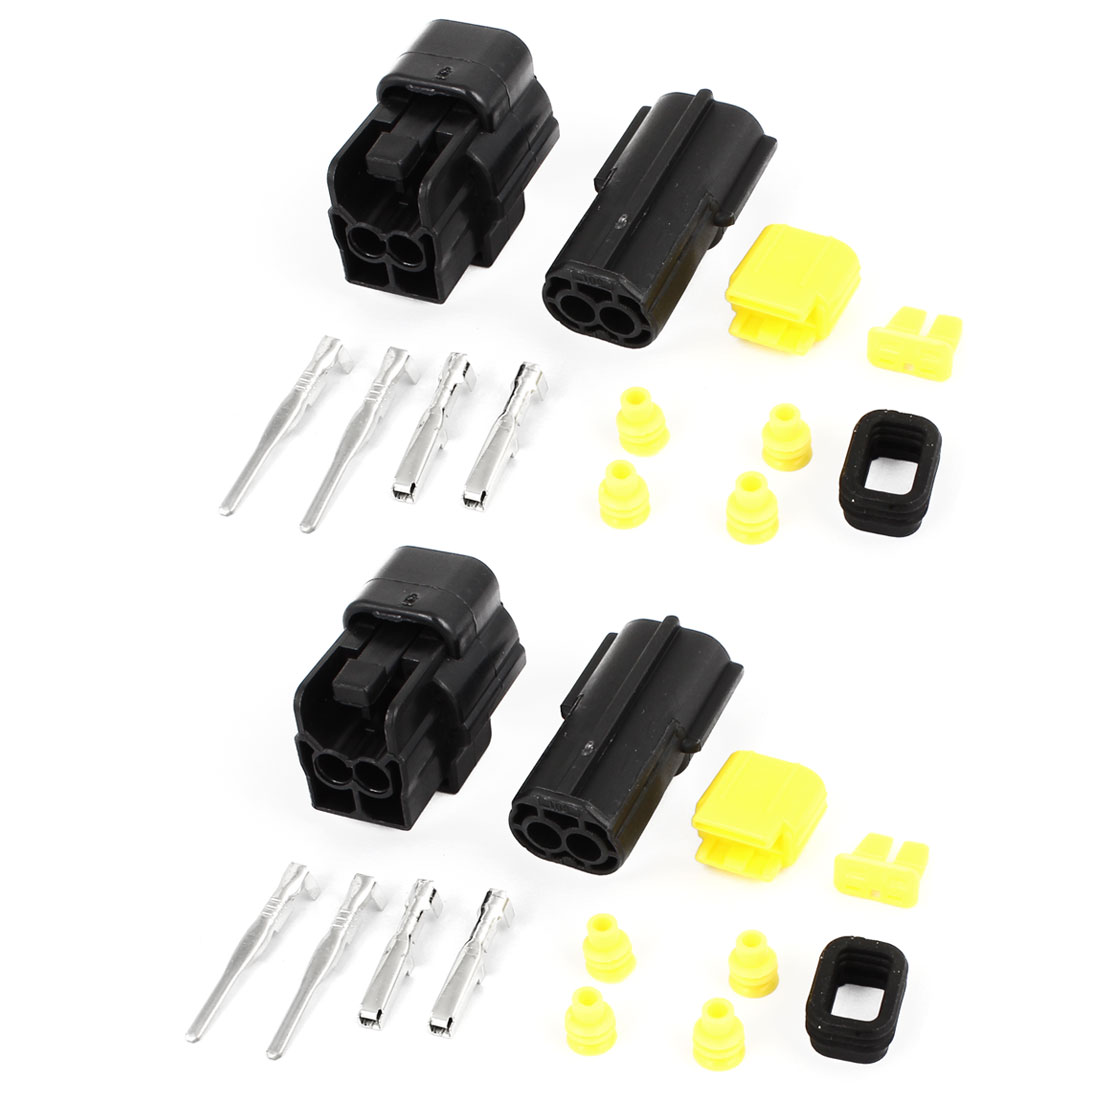 2 Set 2-way 2 Positions Sealed Waterproof Wire Connectors for Car Auto Stereo